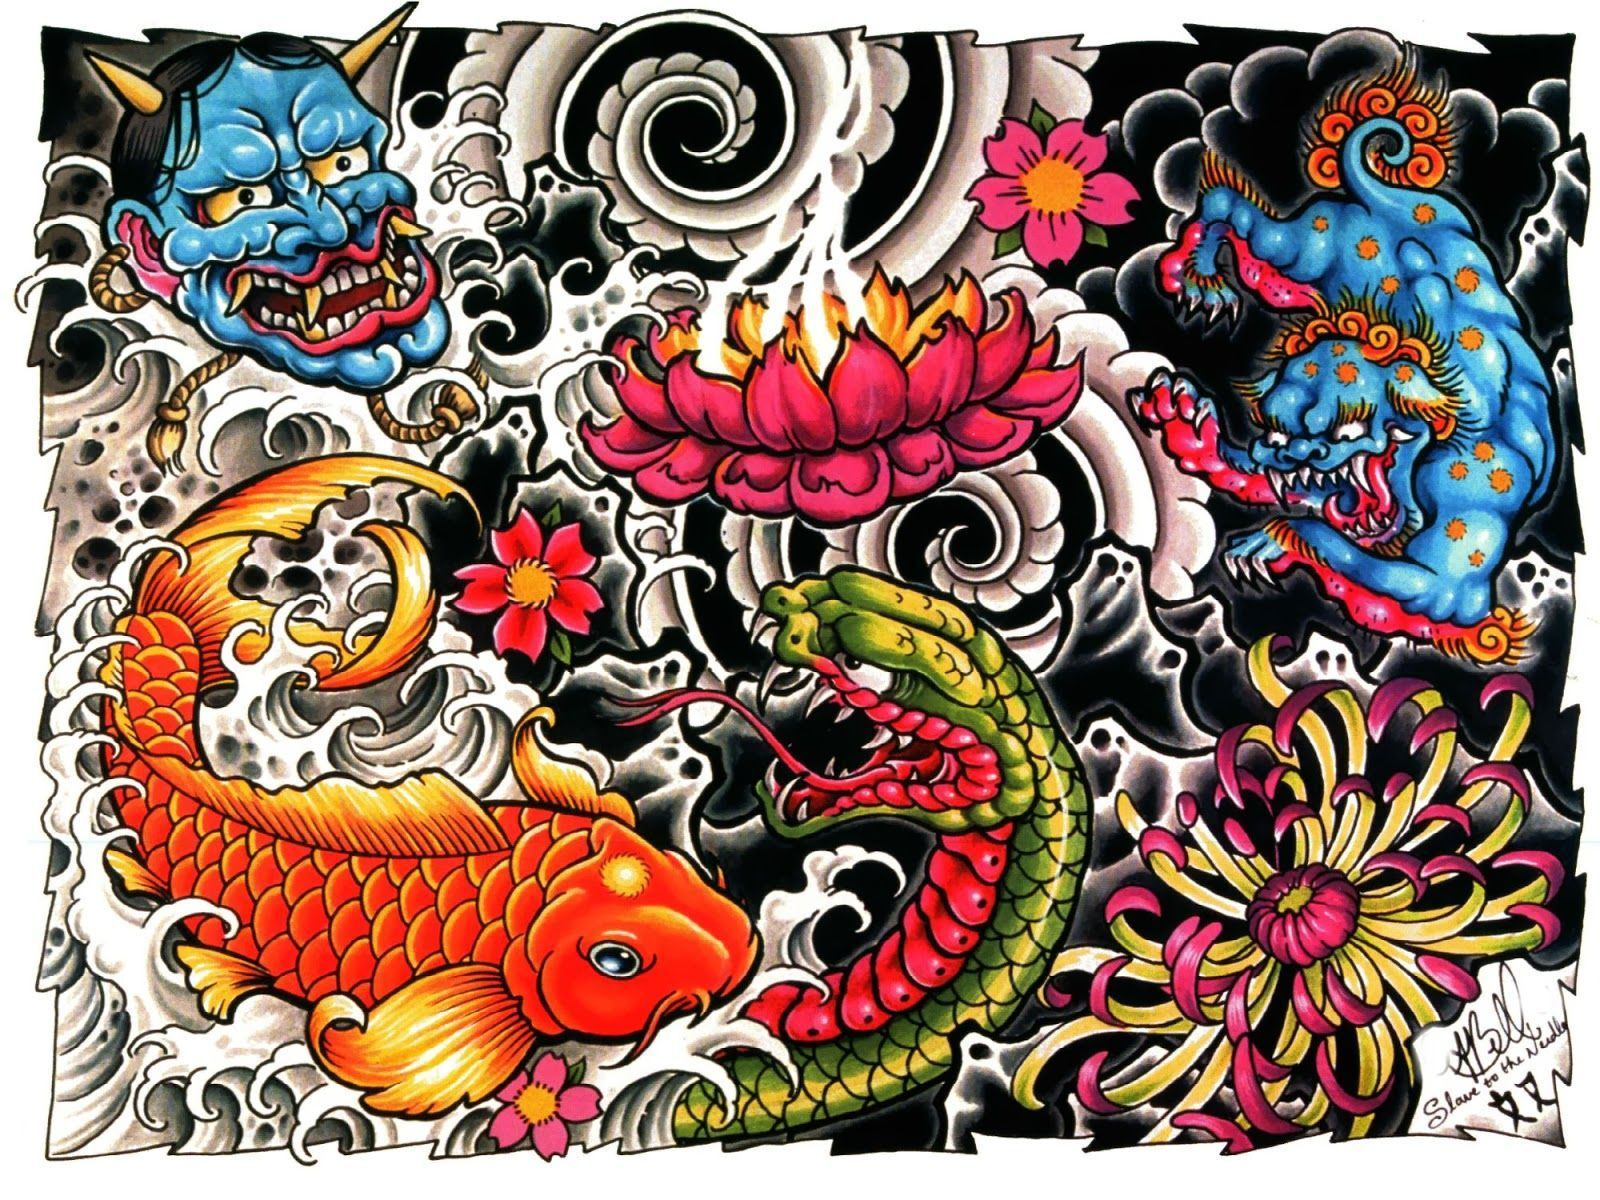 japanese tattoo set wallpapers android apps on google play 1600a—1200 wallpapers of tattoo